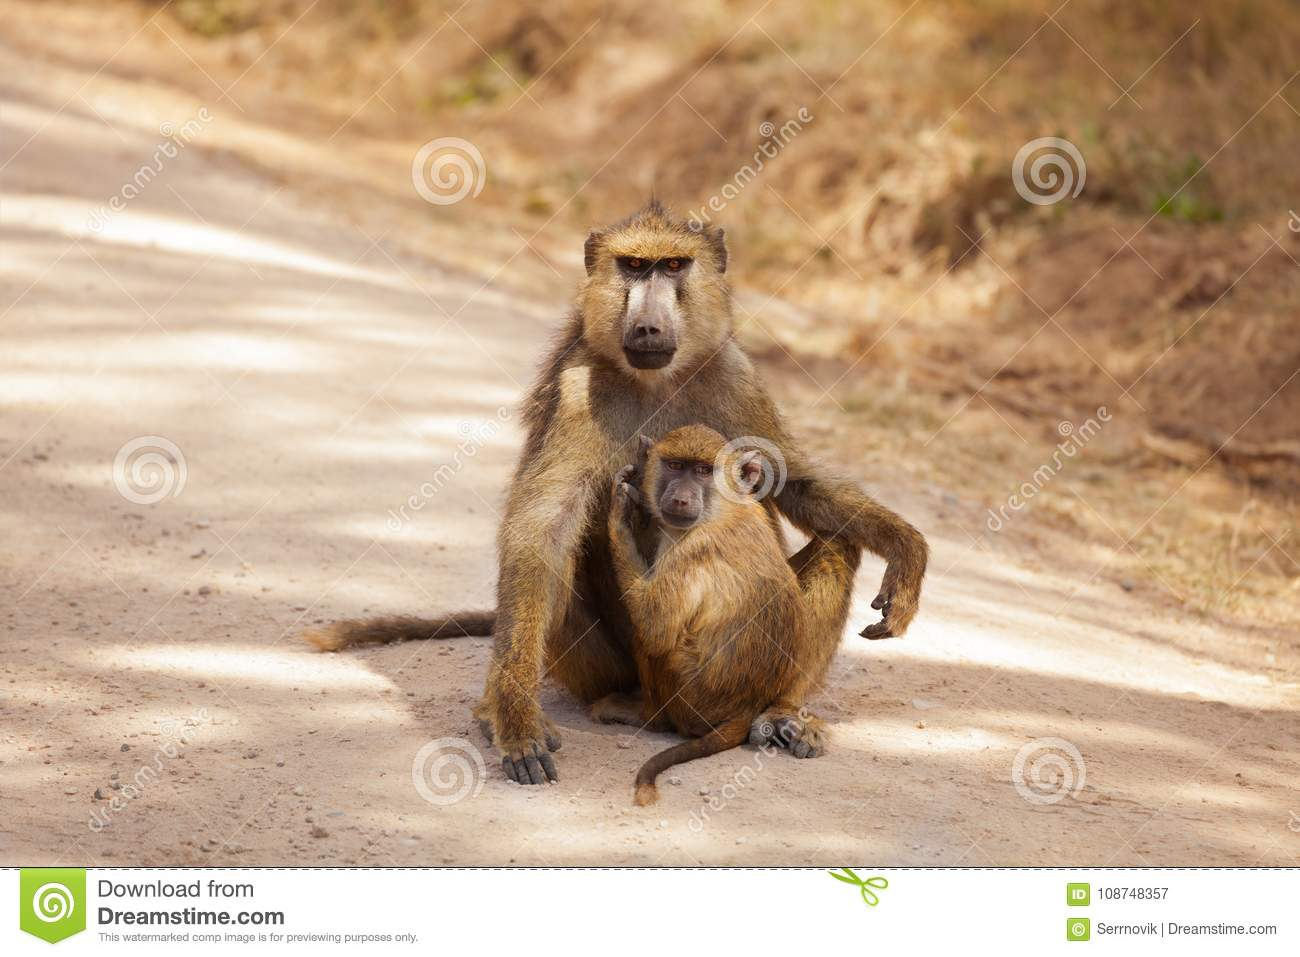 Olive Baboon mother with baby at African savannah